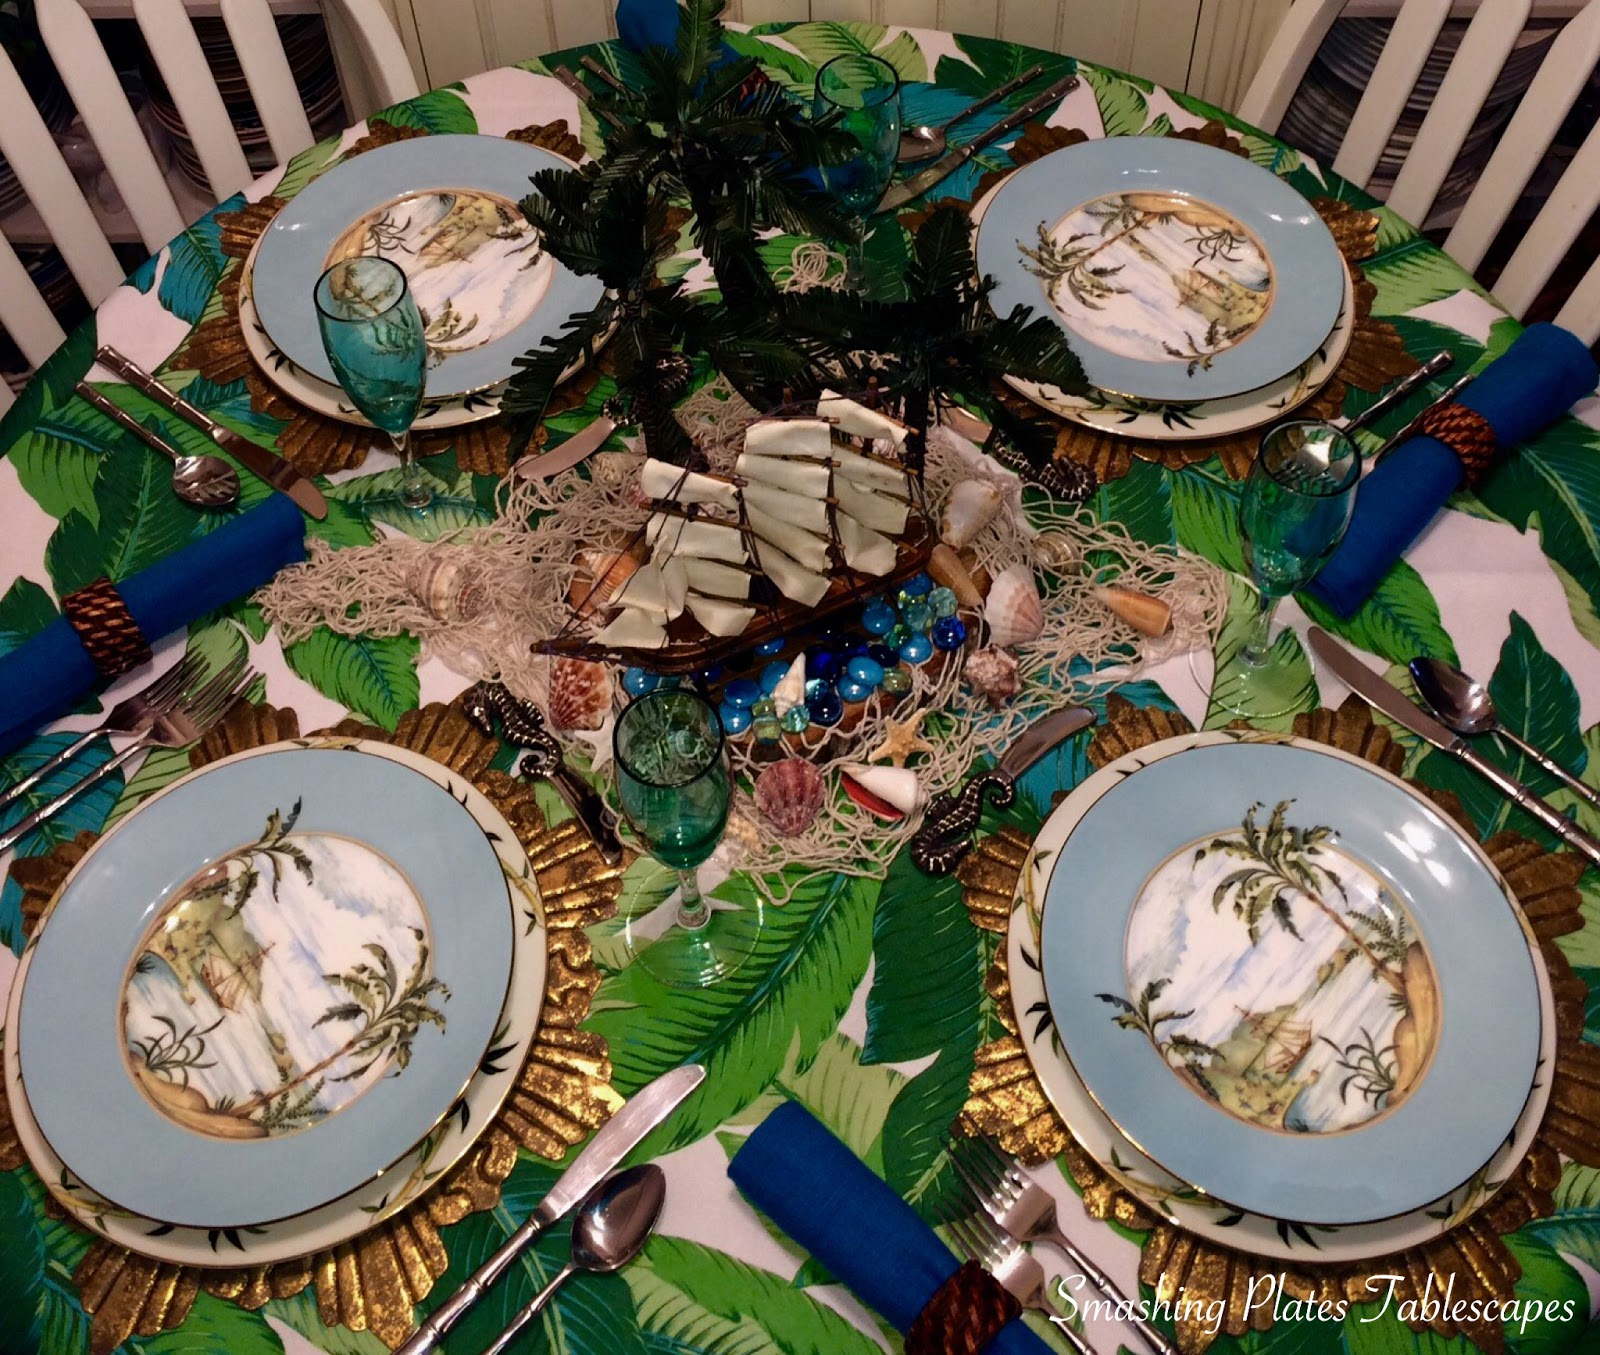 The Lenox Colonial Tradewind salad plates are currently on sale at Macy\u0027s. I would love to own this entire china collection. It\u0027s stunning in person. & Smashing Plates Tablescapes: Colonial Tradewinds